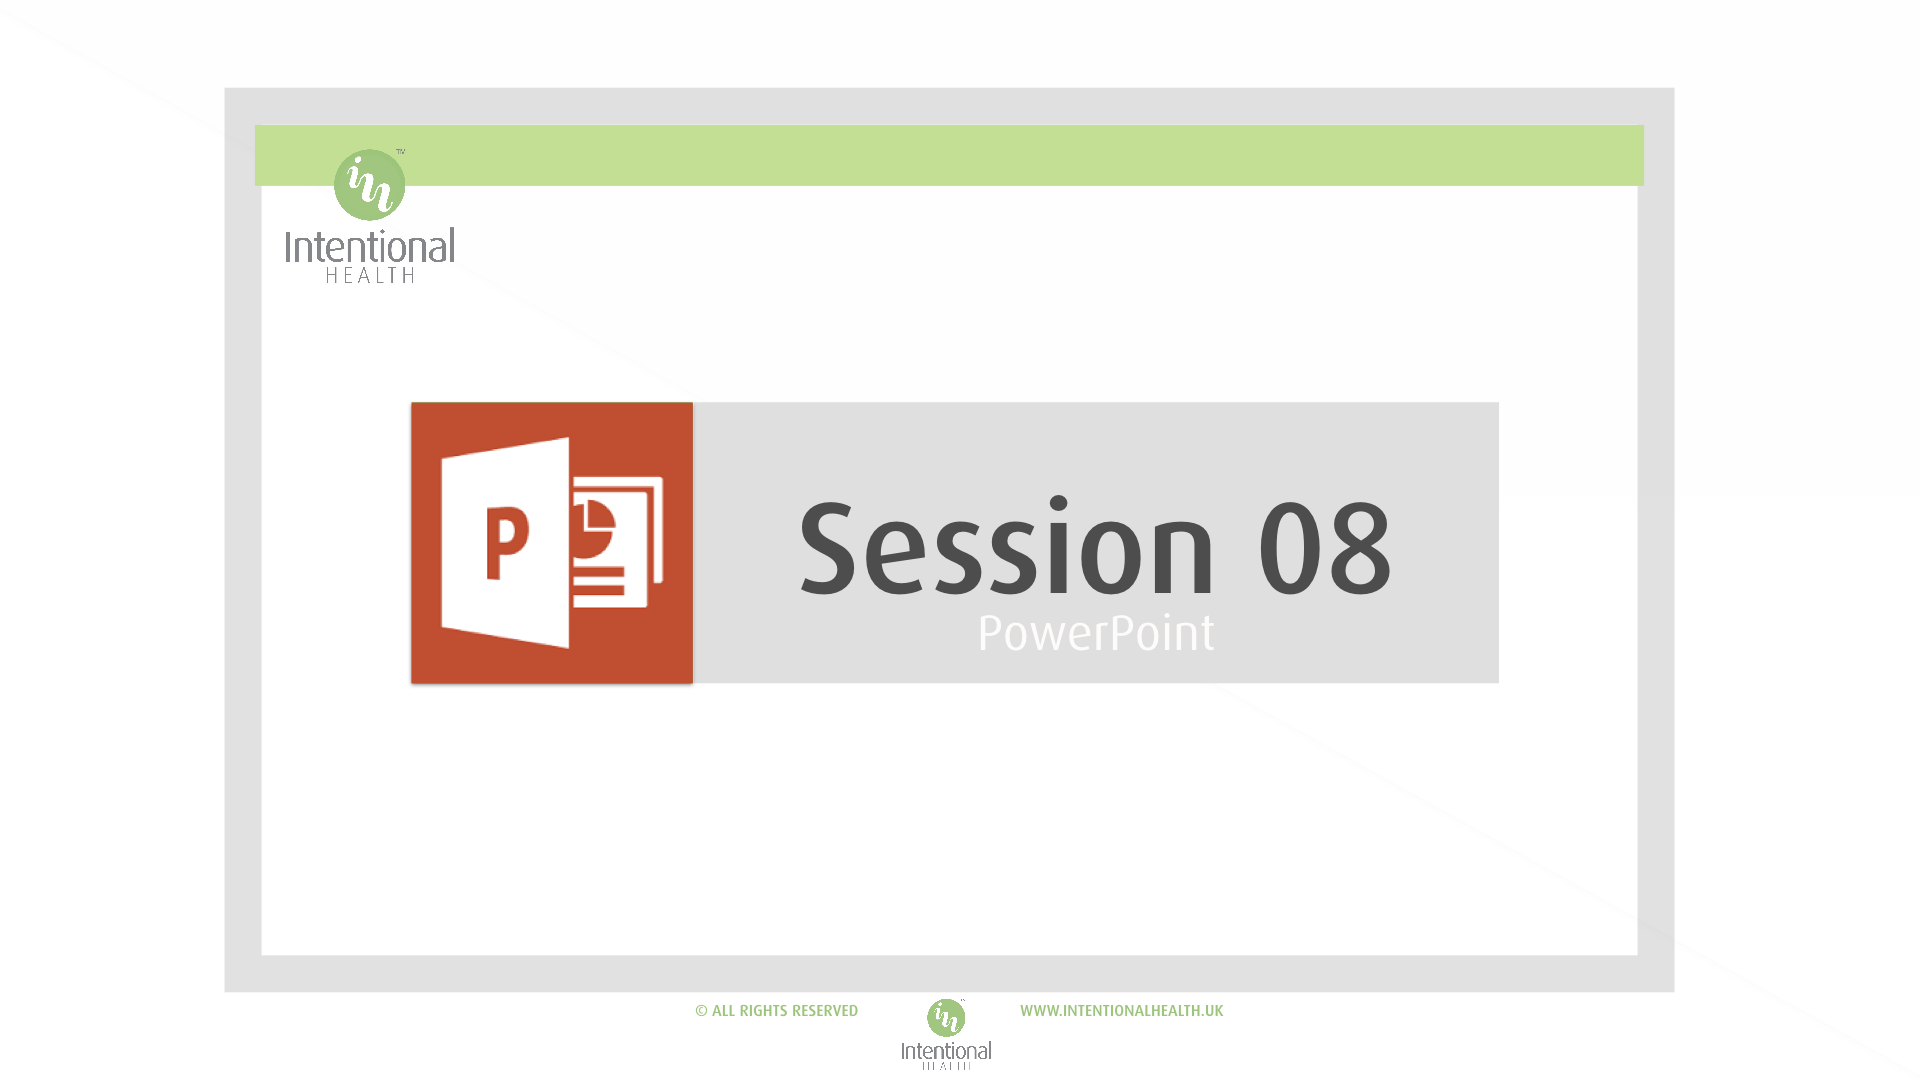 Session 08 Powerpoint